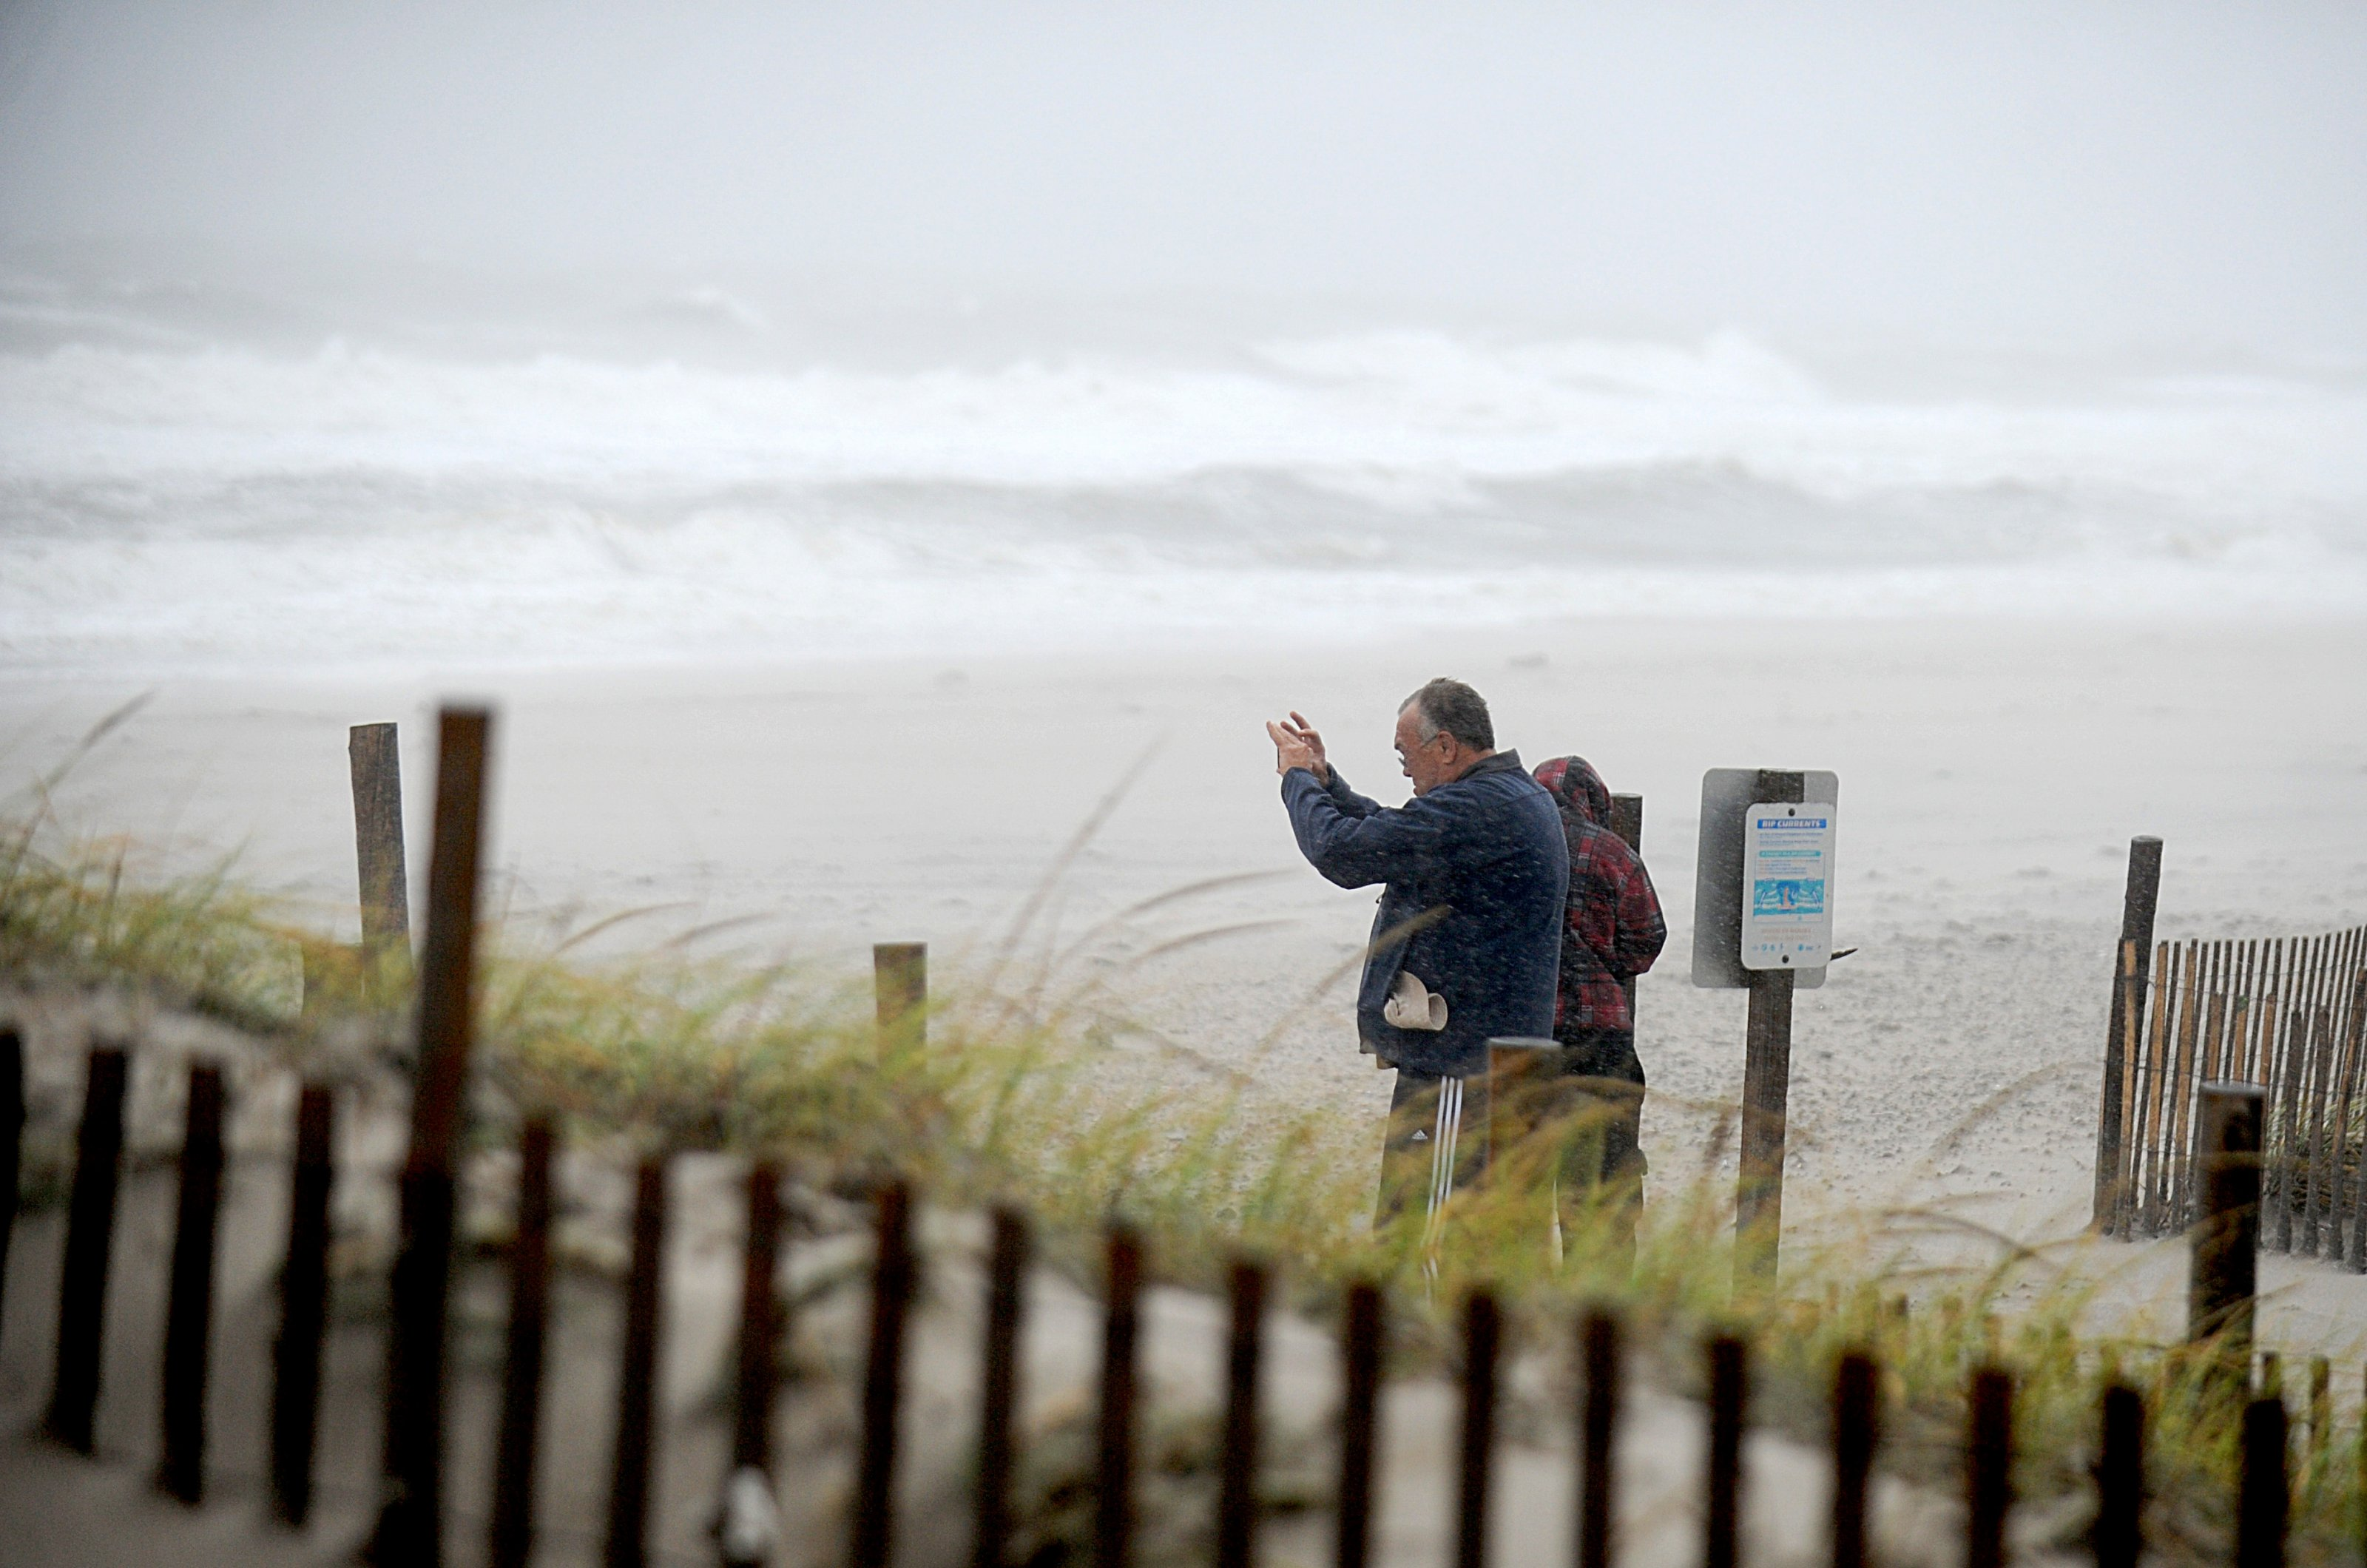 A man stands on the beach and takes photos of high waves and rough waters as they hit the shore line when rain and wind from Hurricane Joaquin arrives on the east coast of the United States on October 2, 2015 in Seaside Heights, NJ. The flooding scenario will develop Friday night and through the weekend as flash flood watches extend from Atlanta to near New York City. Photo by Dennis Van Tine/ABACAPRESS.COM